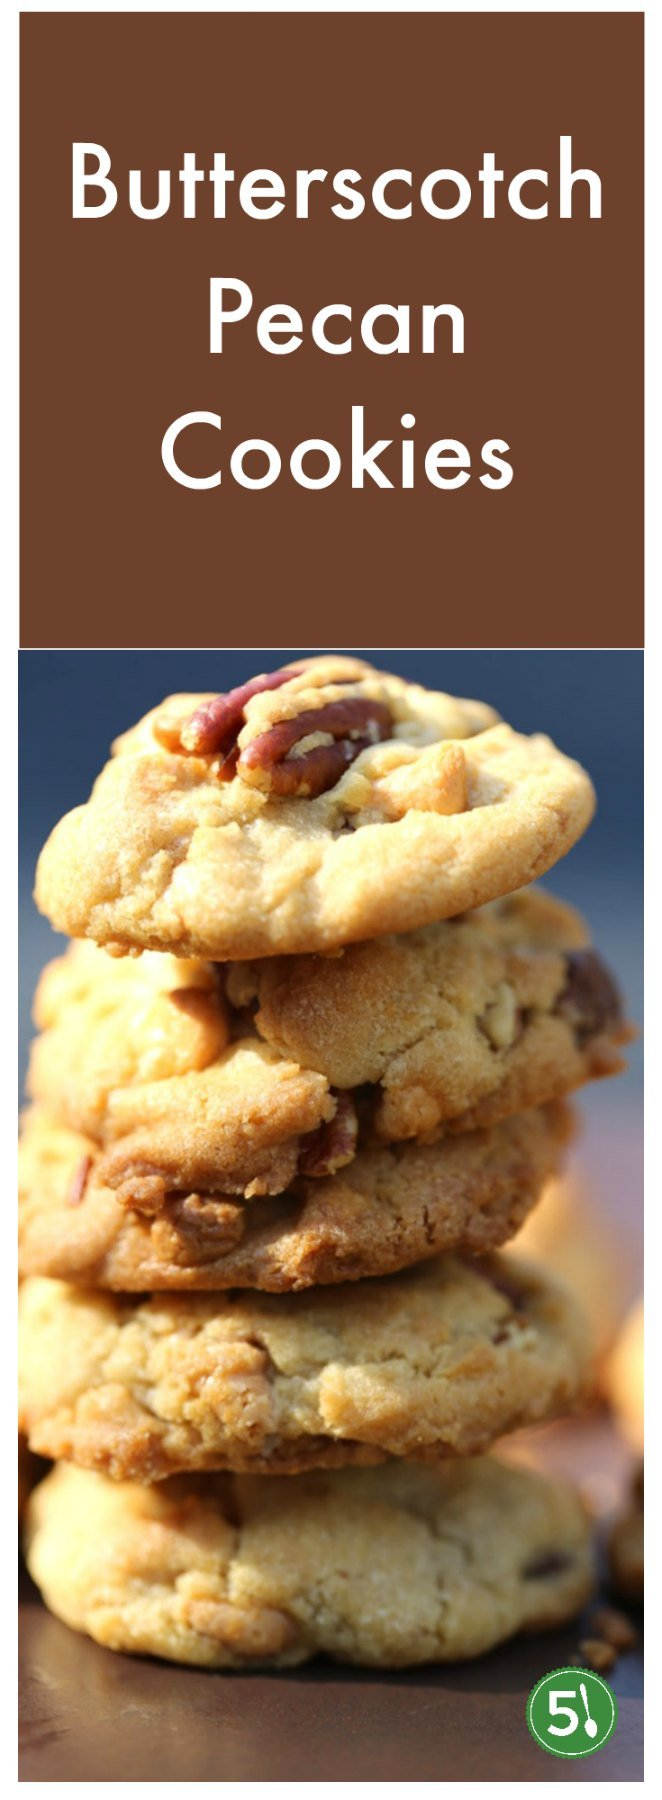 These easy butterscotch cookies have a unique flavor combination. The toasted pecans atop the crispy cookie are cookie perfection.